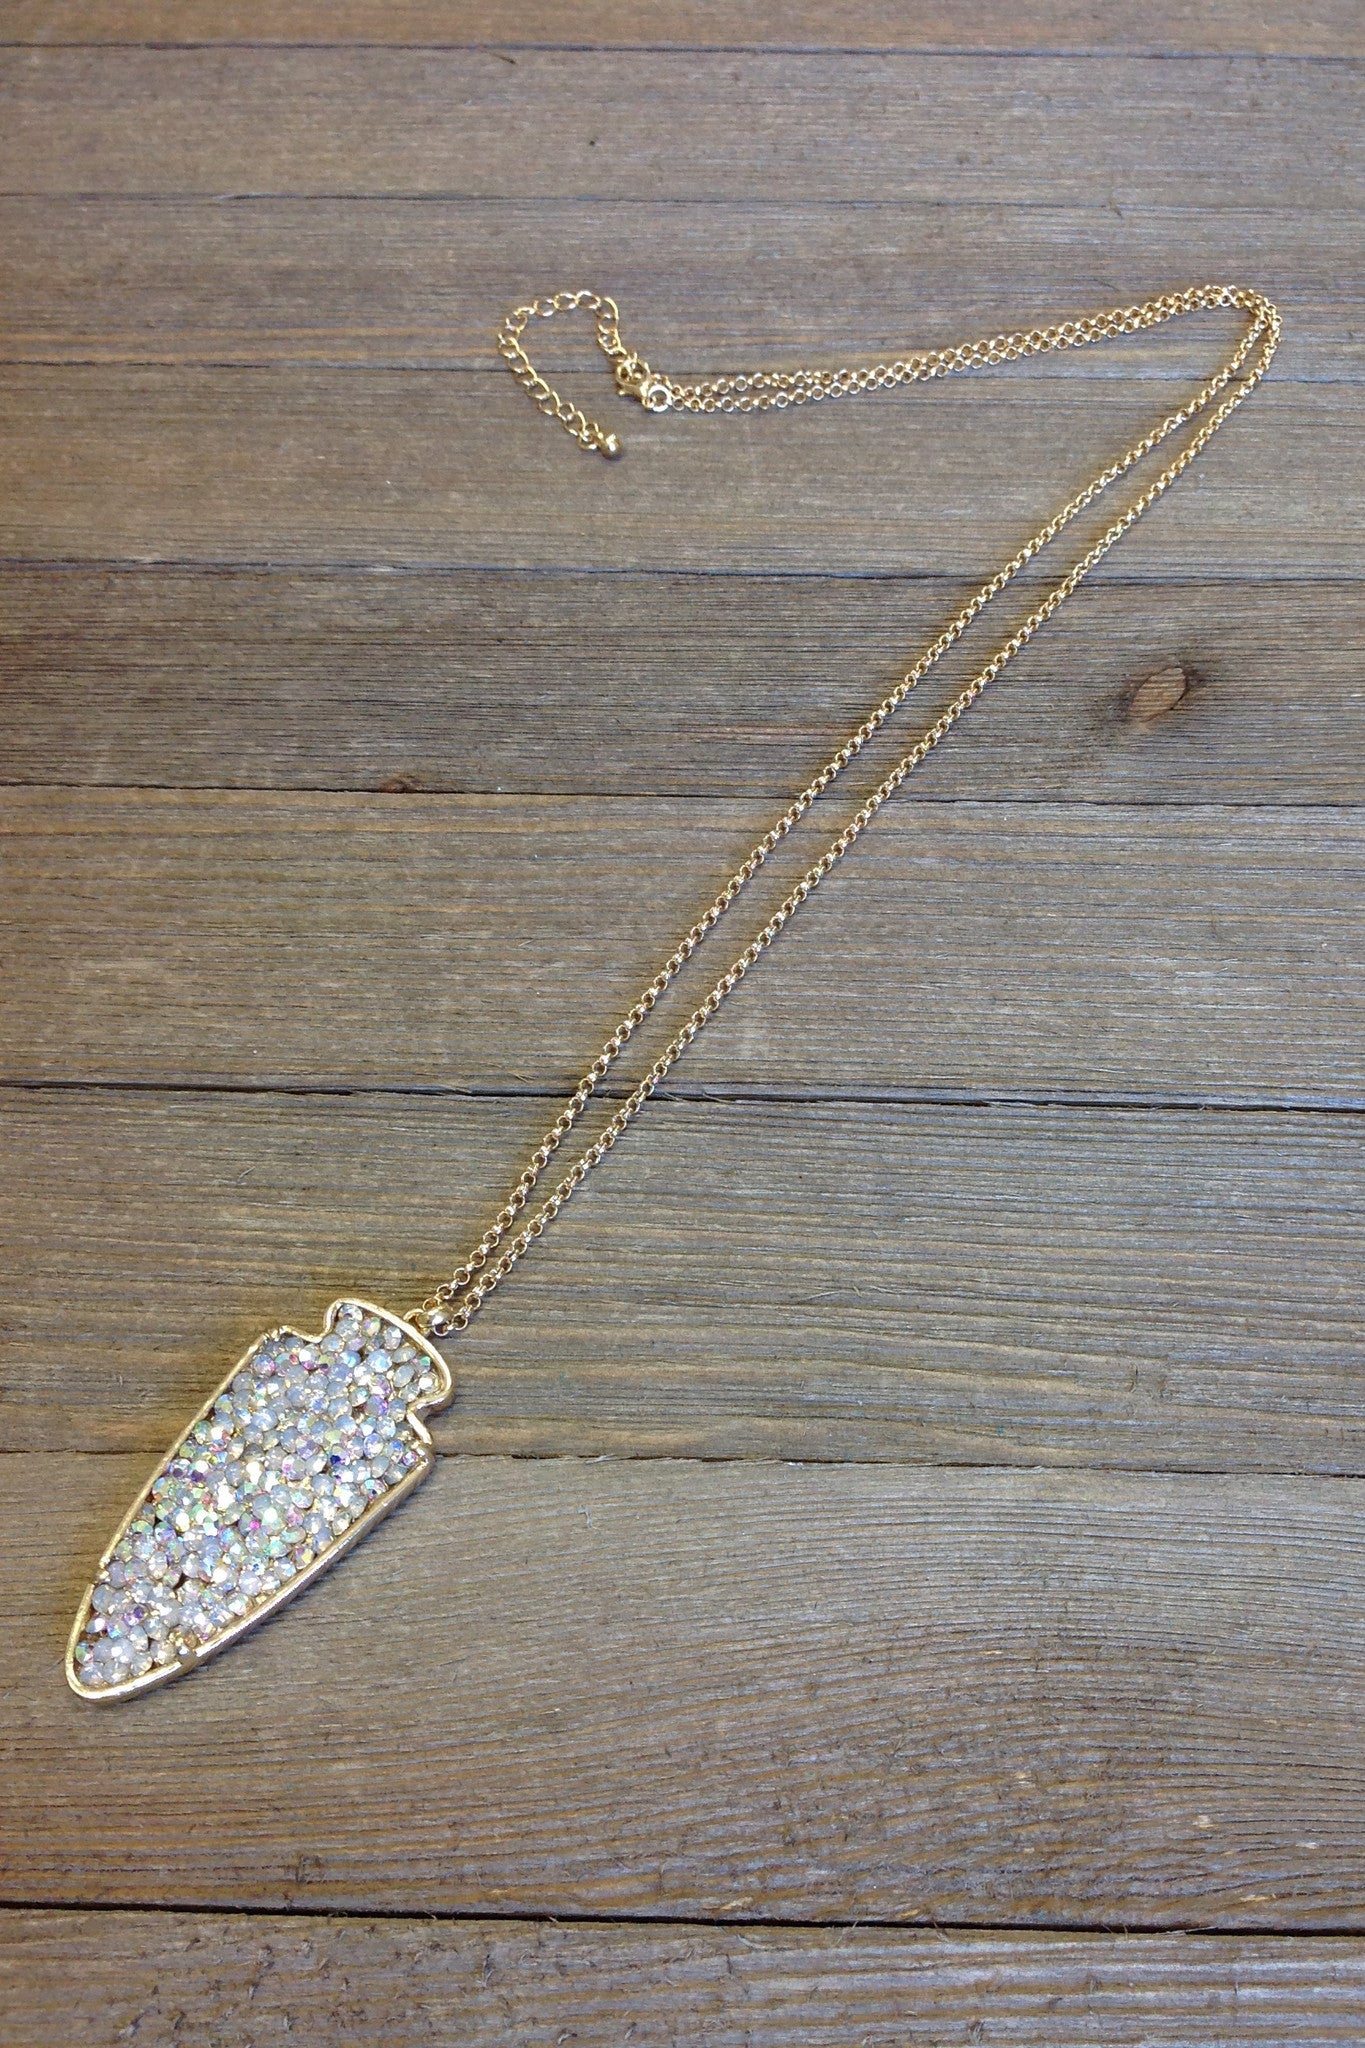 Gold Iridescent Arrowhead Necklace